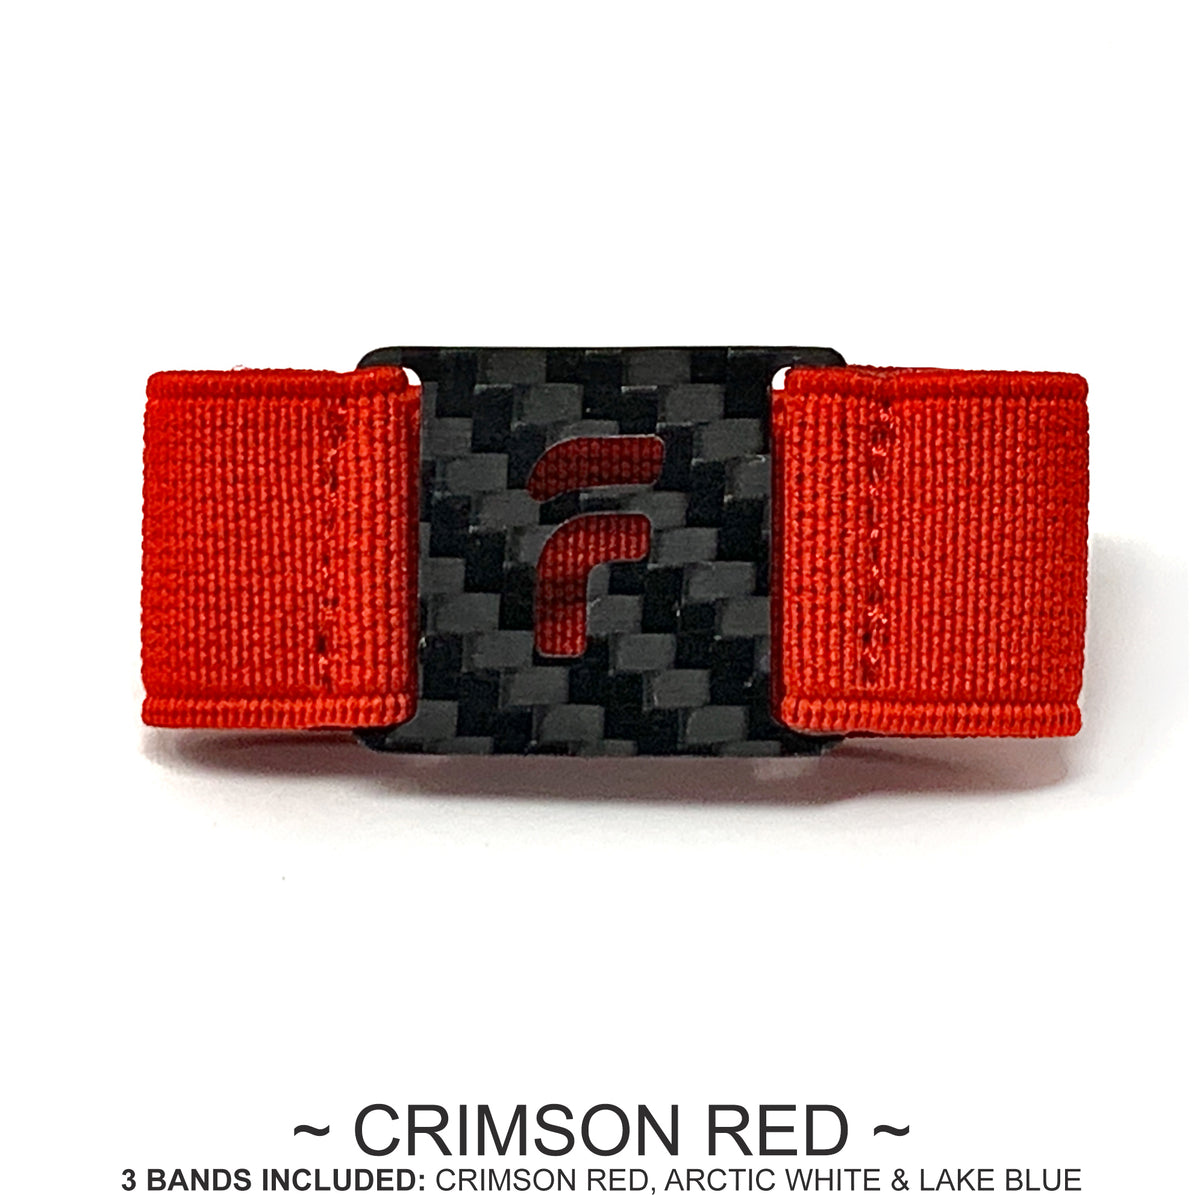 PRESTIGE BAND PACK ONLY (3 Bands - Crimson Red / Arctic White / Lake Blue) Wallet NOT Included